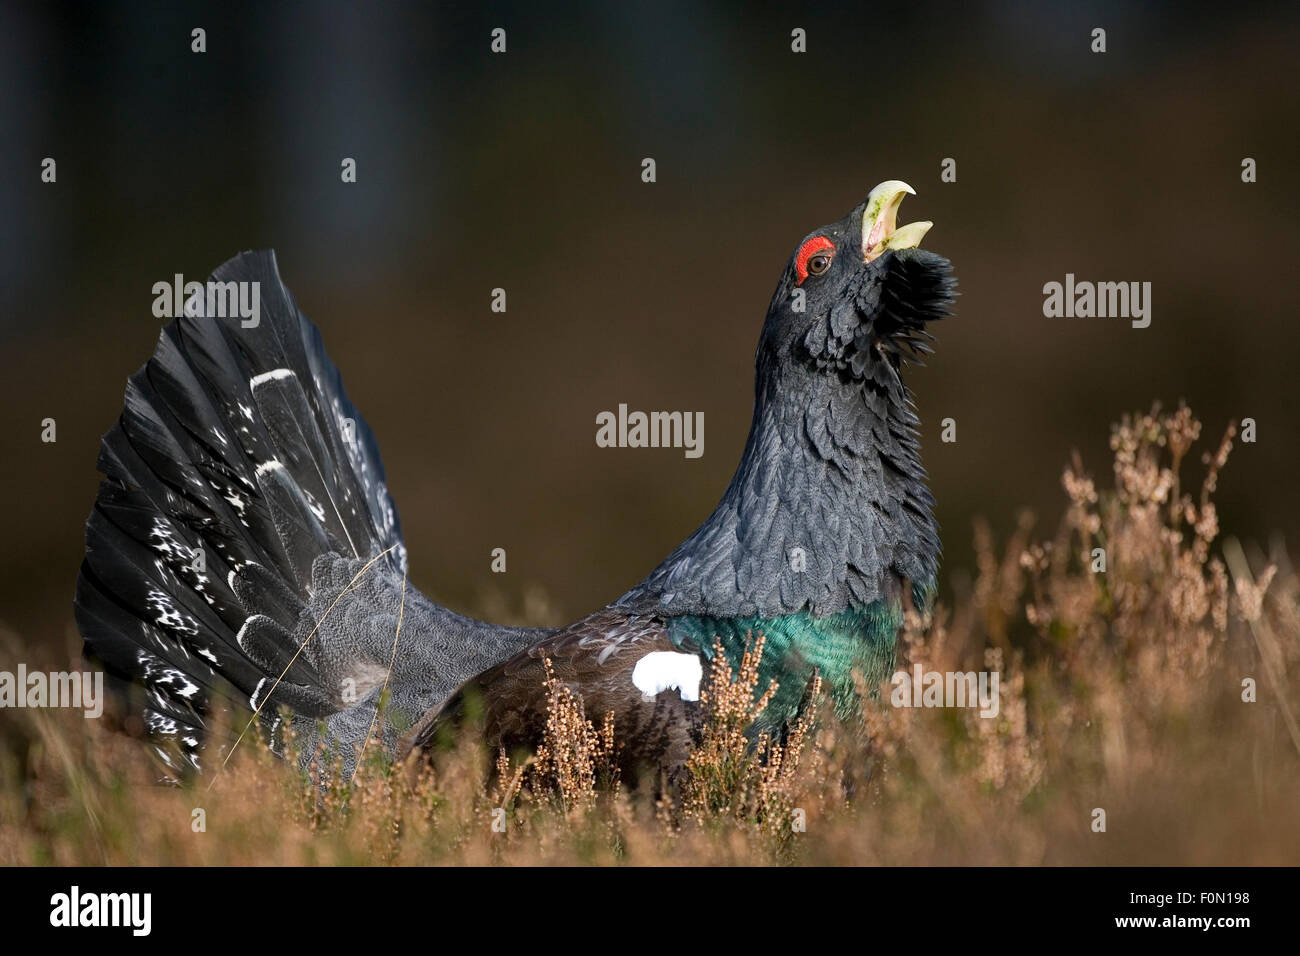 Capercaillie (Tetrao urogallus) male displaying, Cairngorms NP, Scotland, March 2009 - Stock Image